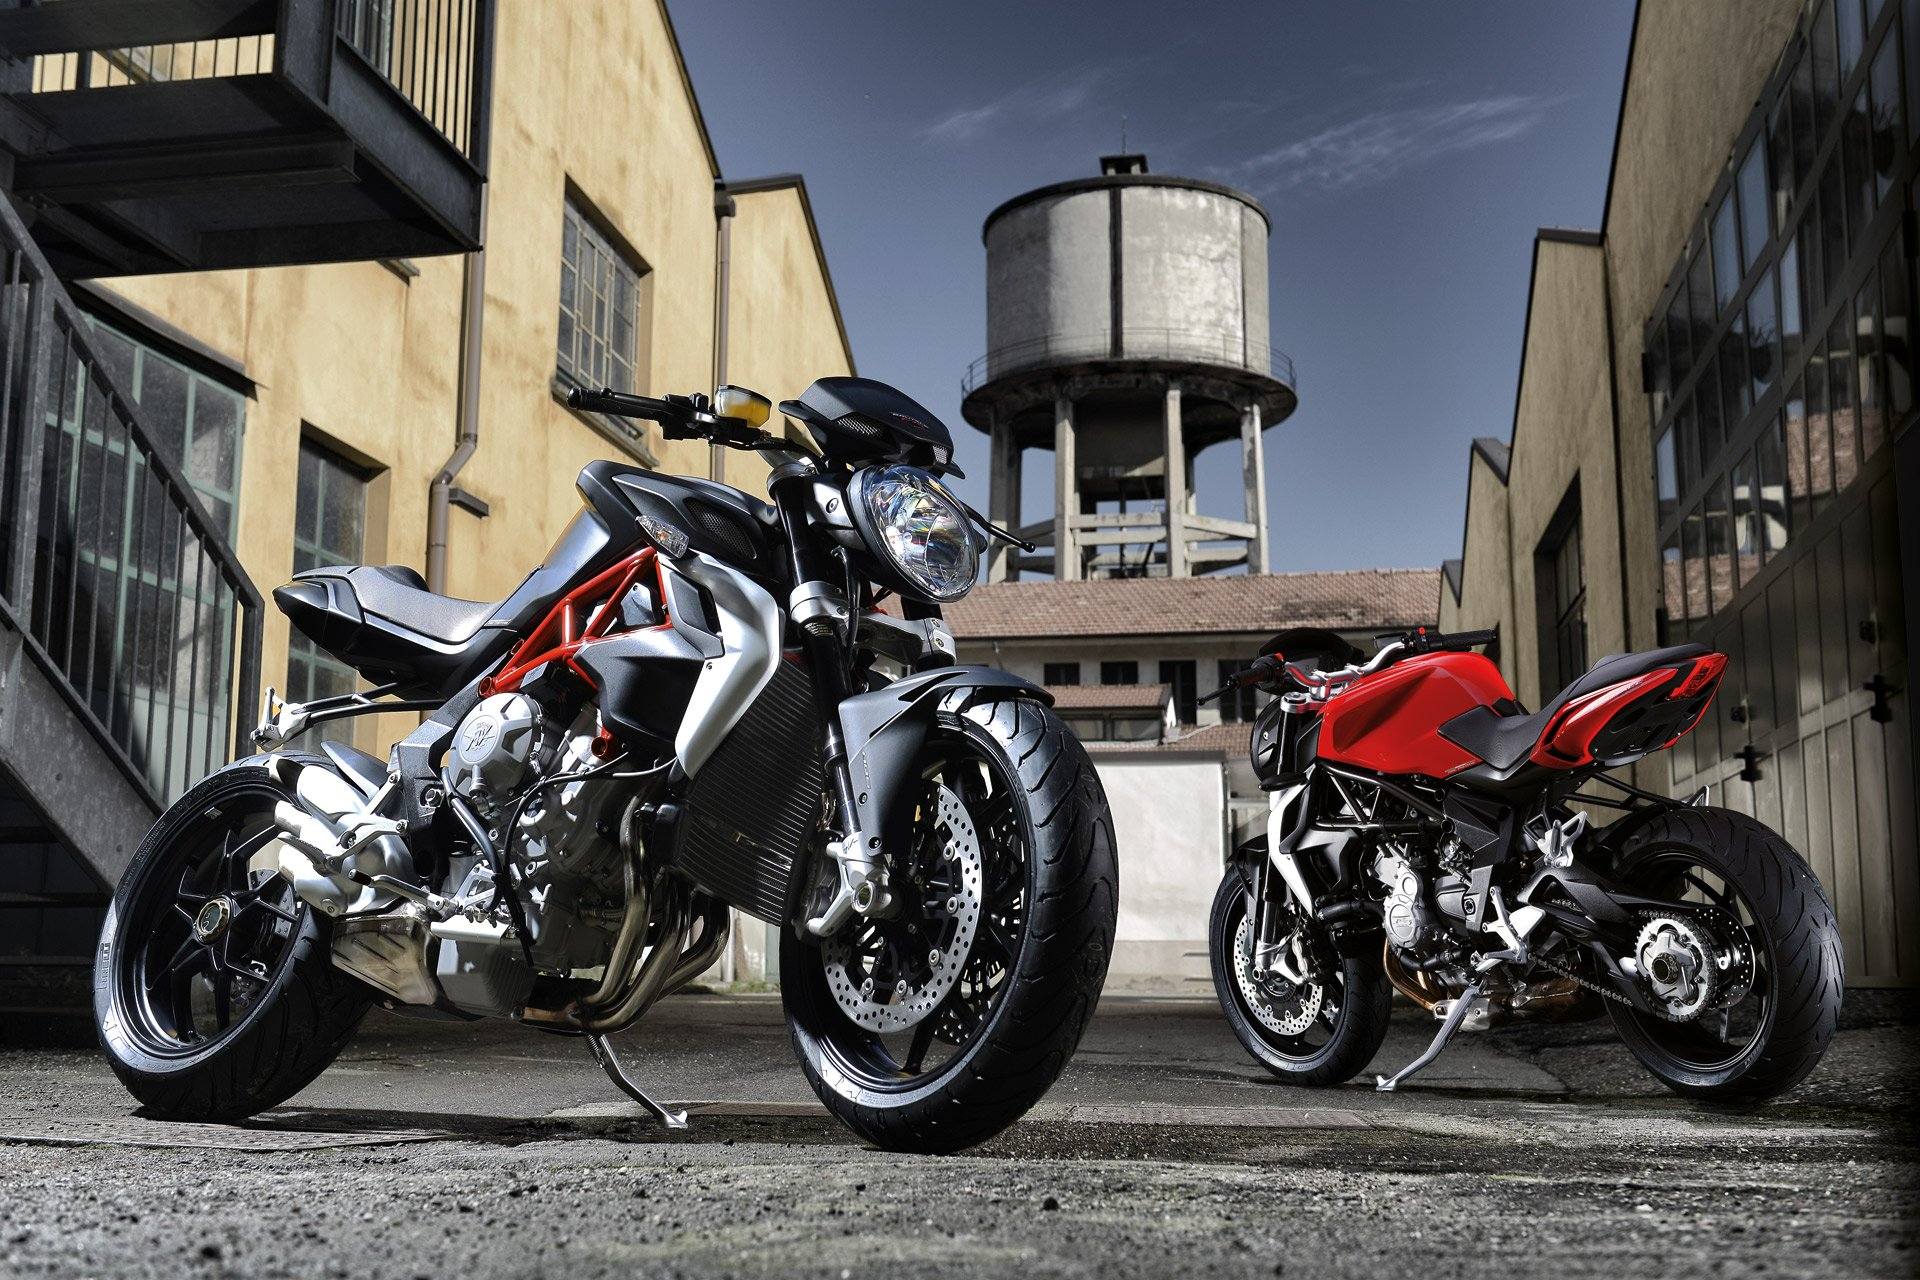 new mv agusta brutale 675 expected this year - autoevolution